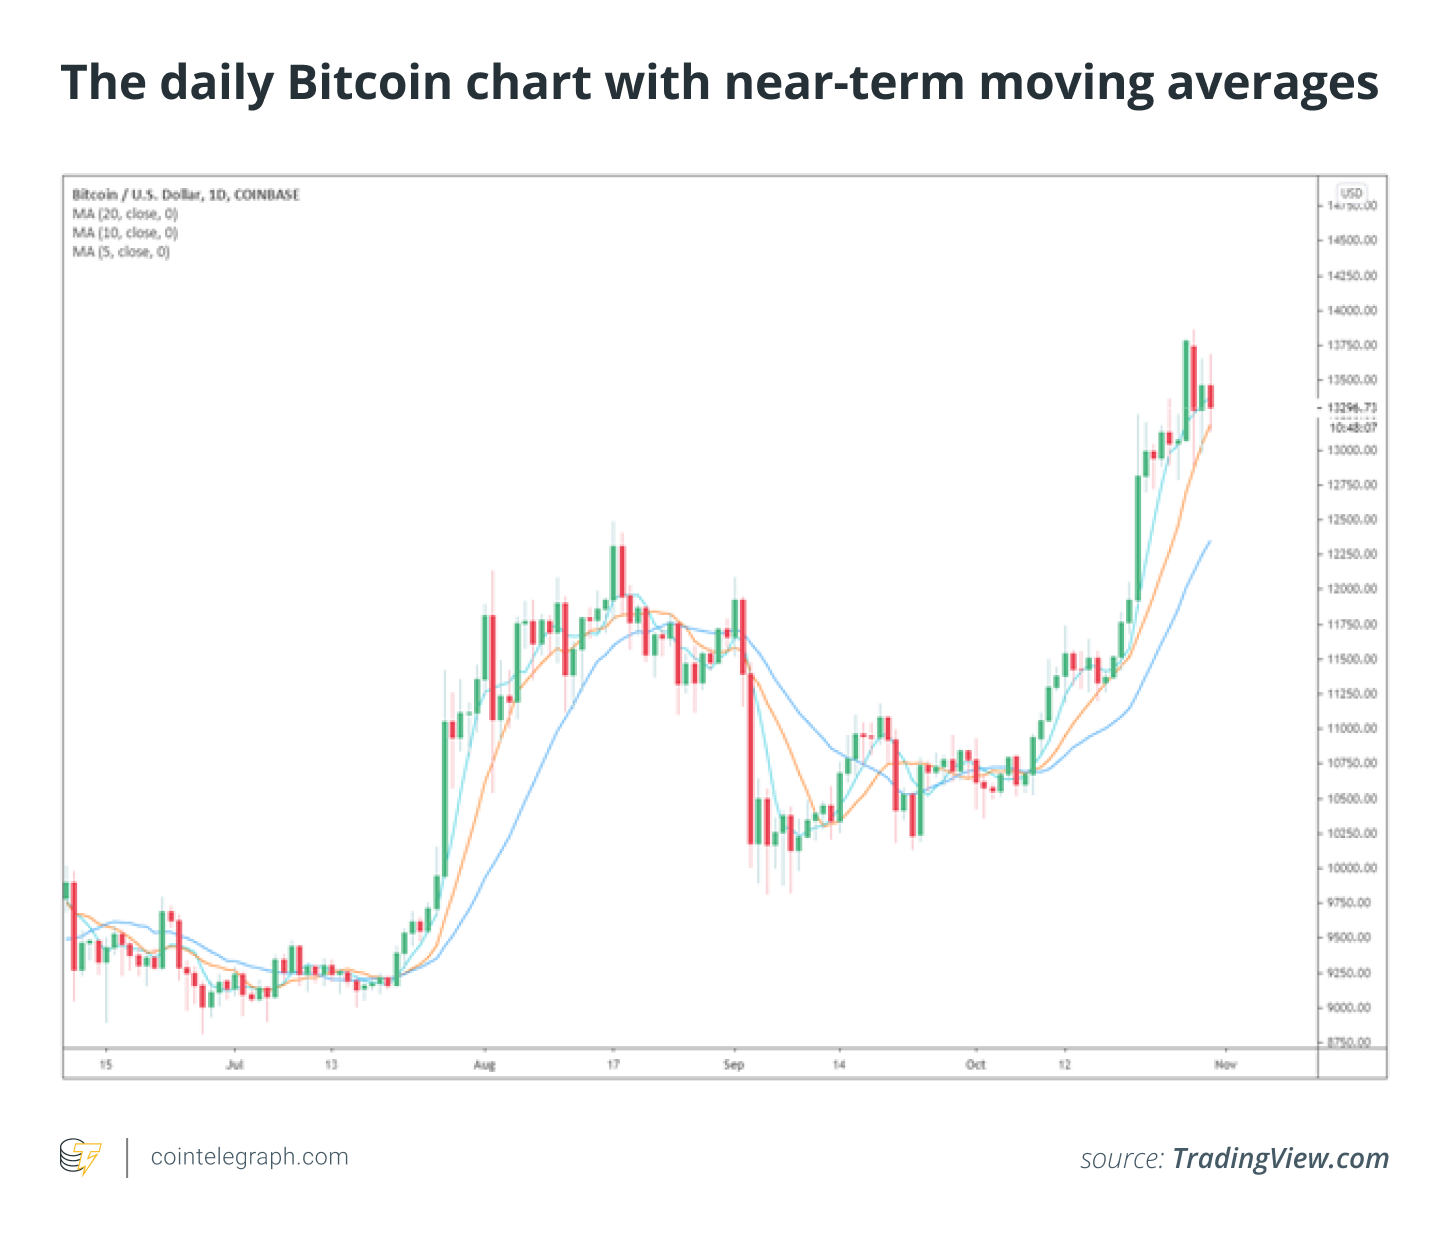 US macro events unlikely to fully derail Bitcoin price gains